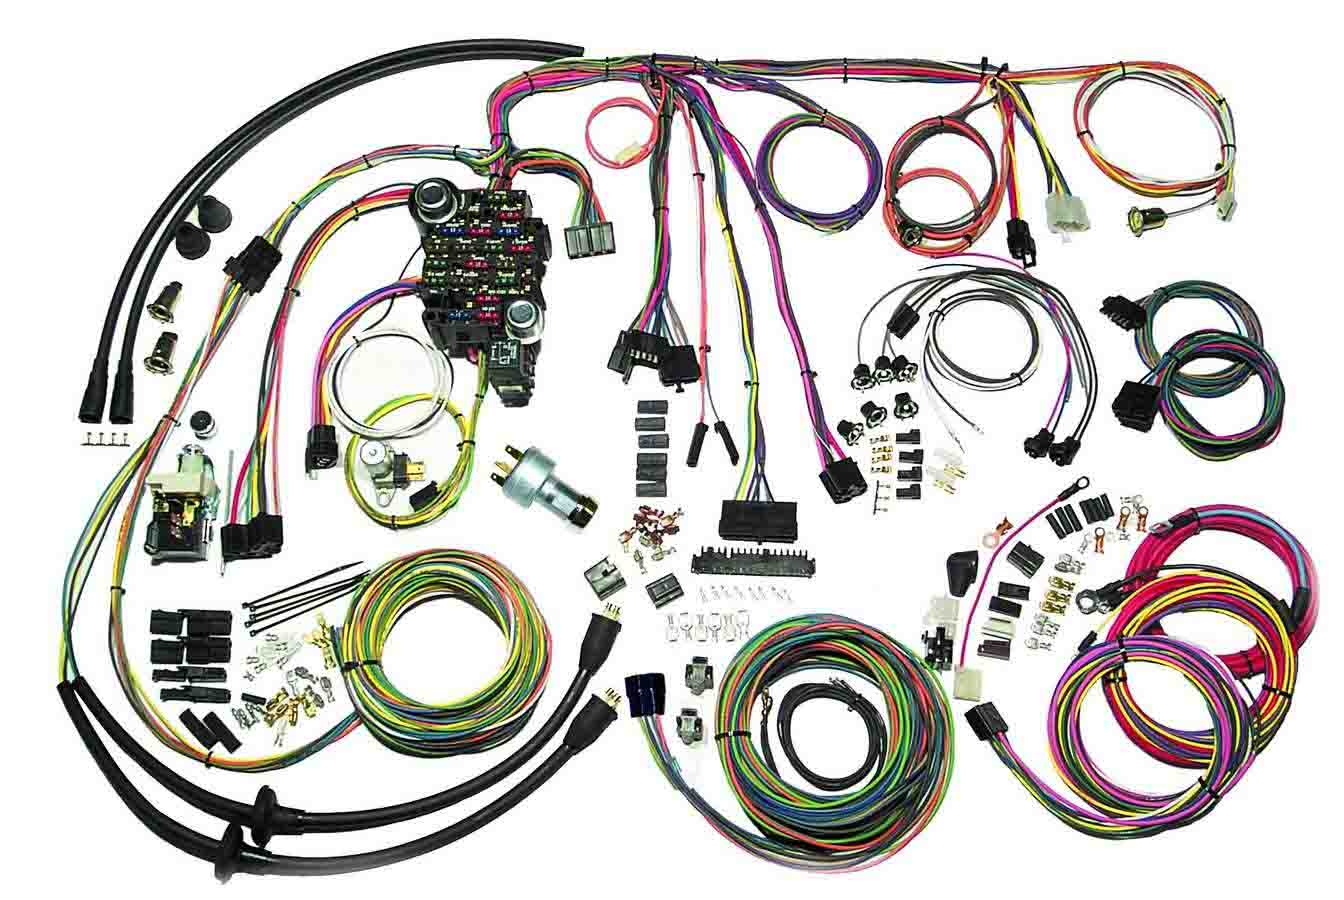 57 Chevy Classic Update Wiring System